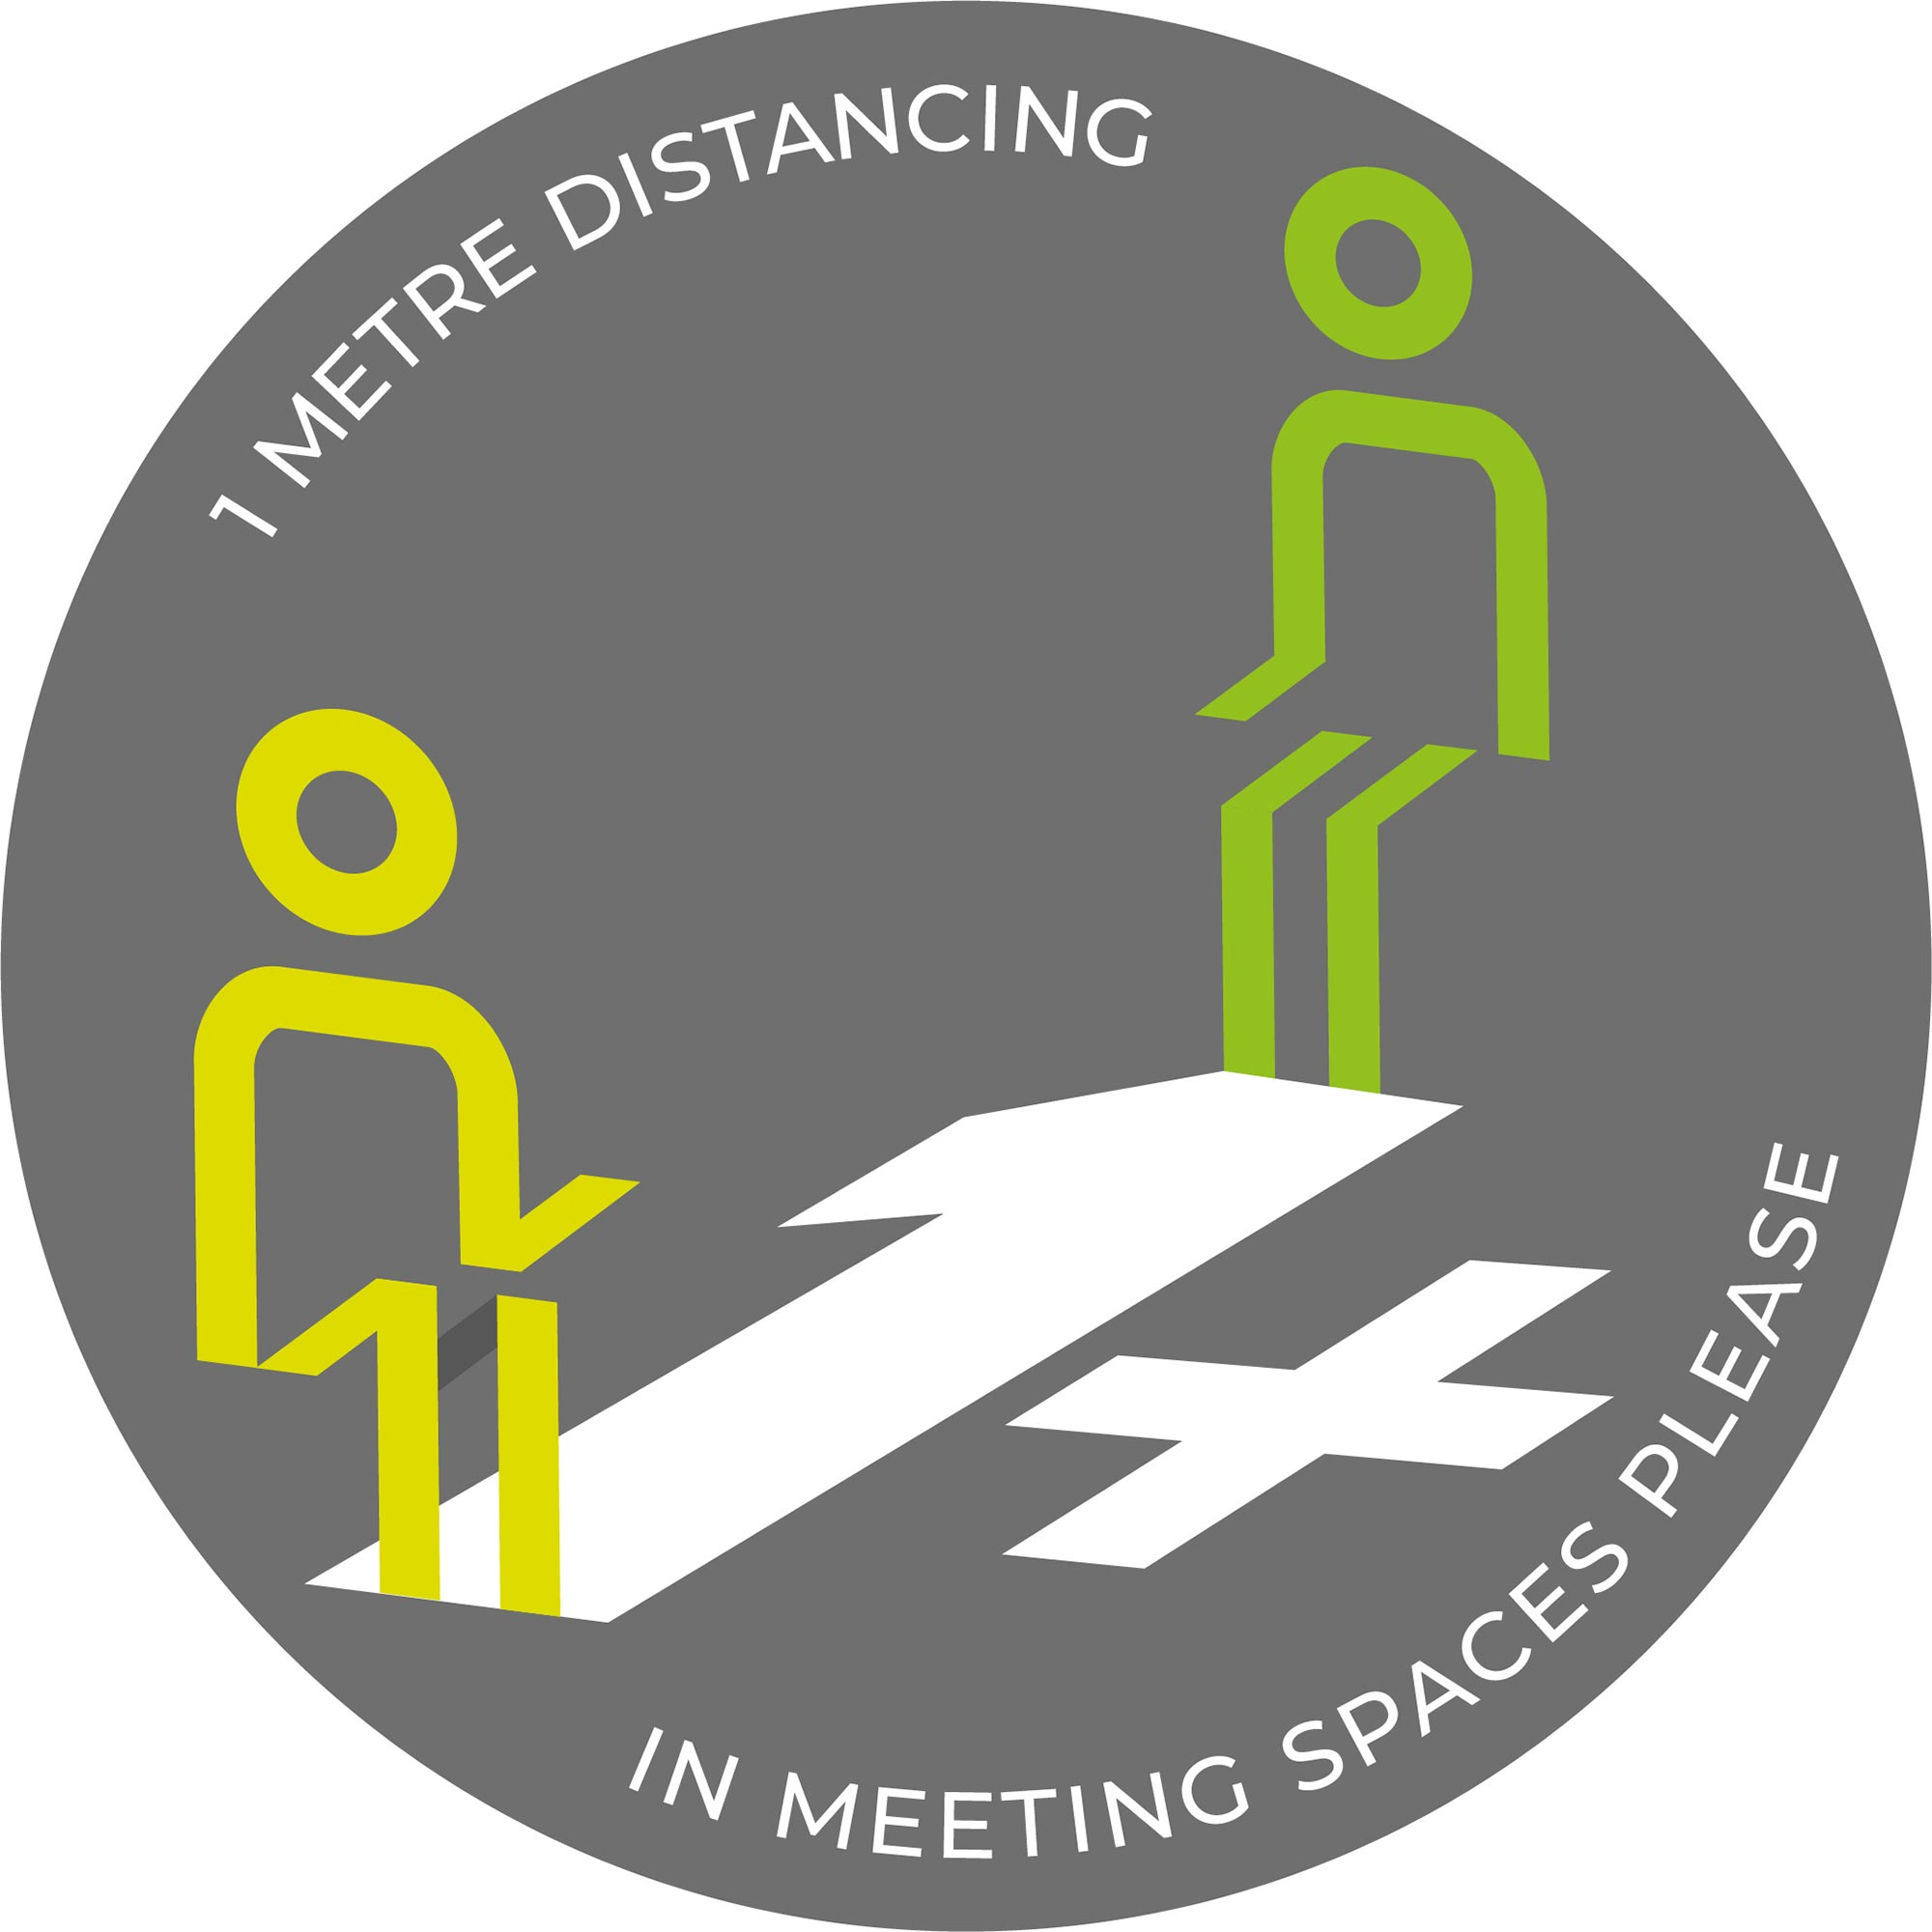 1m Meeting Spaces Distancing - Grey sticker